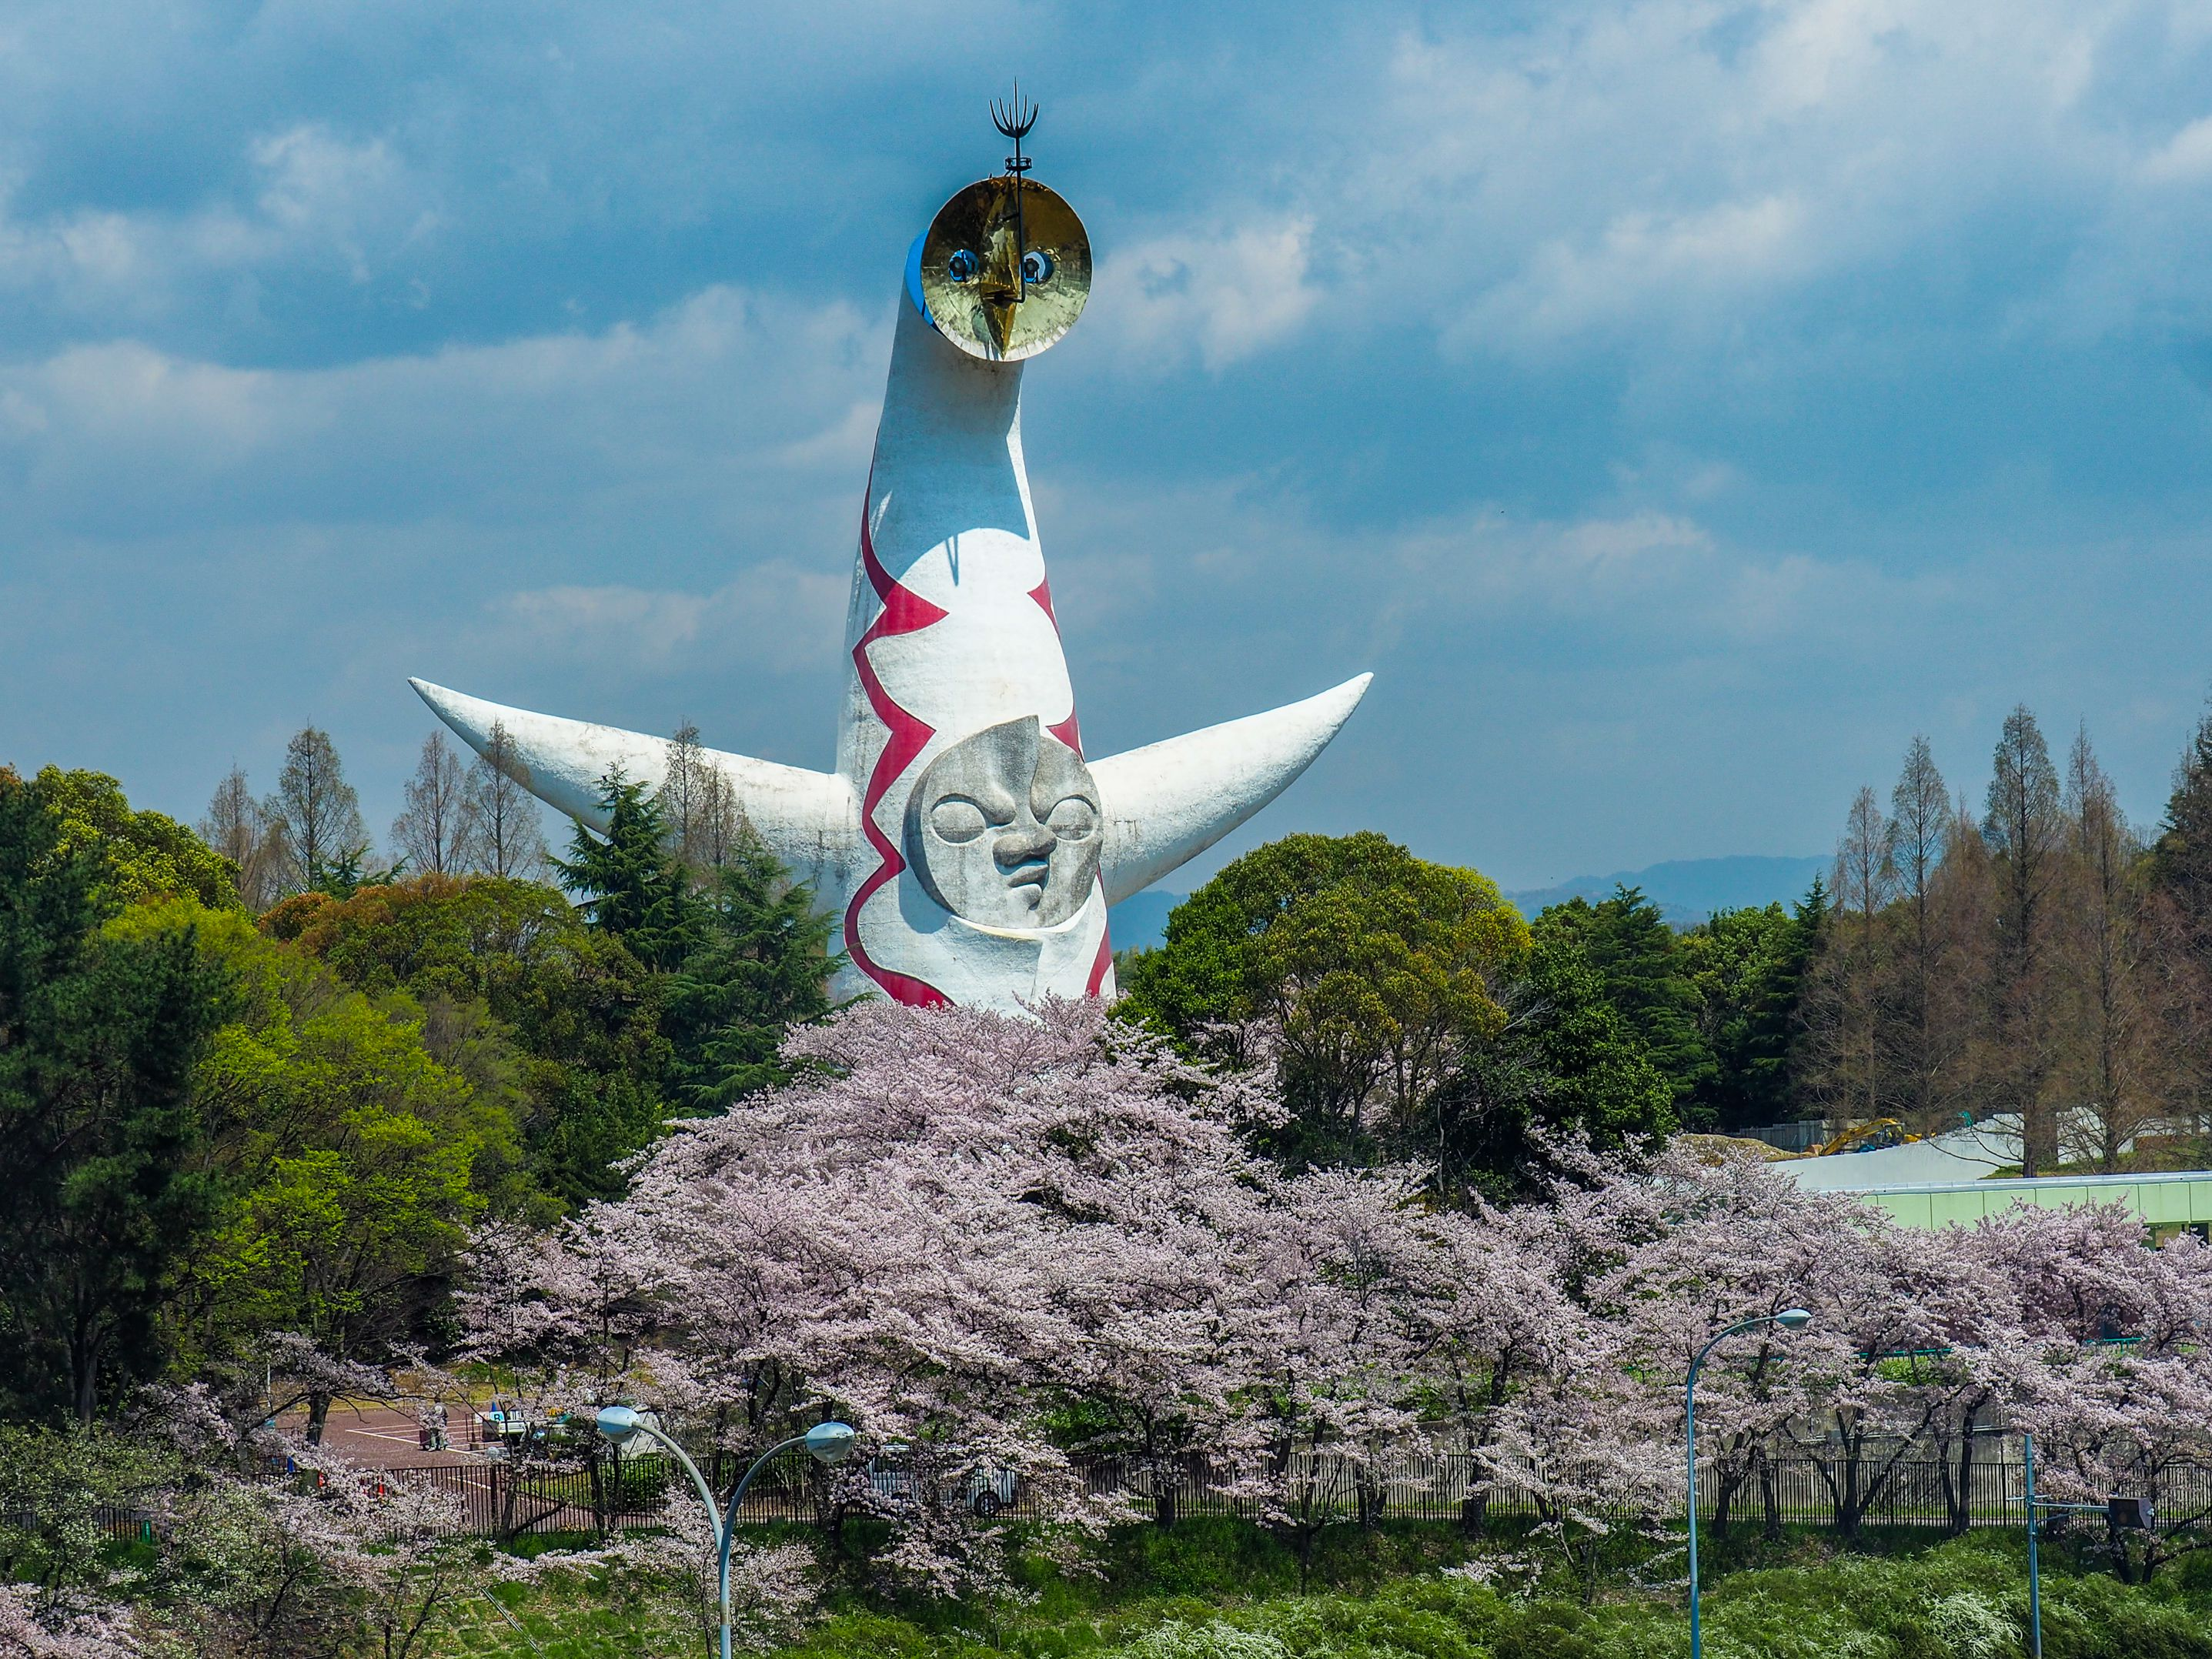 Cherry Blossoms in front of the Tower of the sun